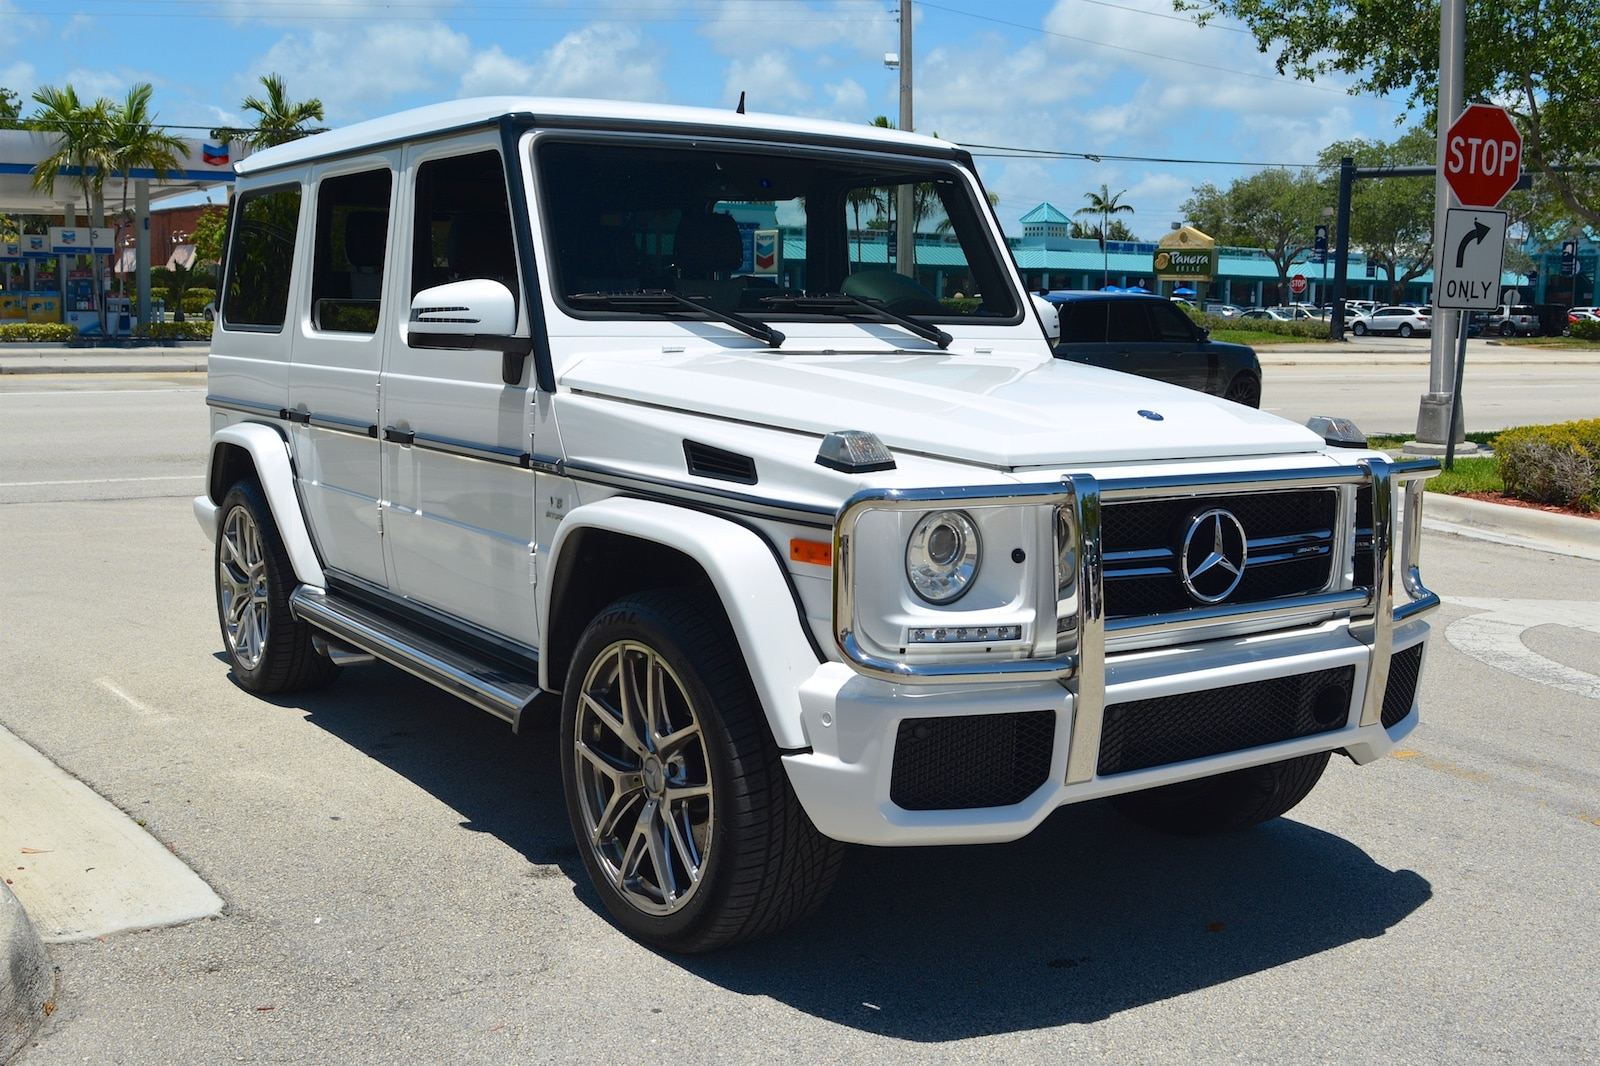 Used 2015 mercedes benz g63 amg for sale fort lauderdale fl for Mercedes benz g63 amg for sale